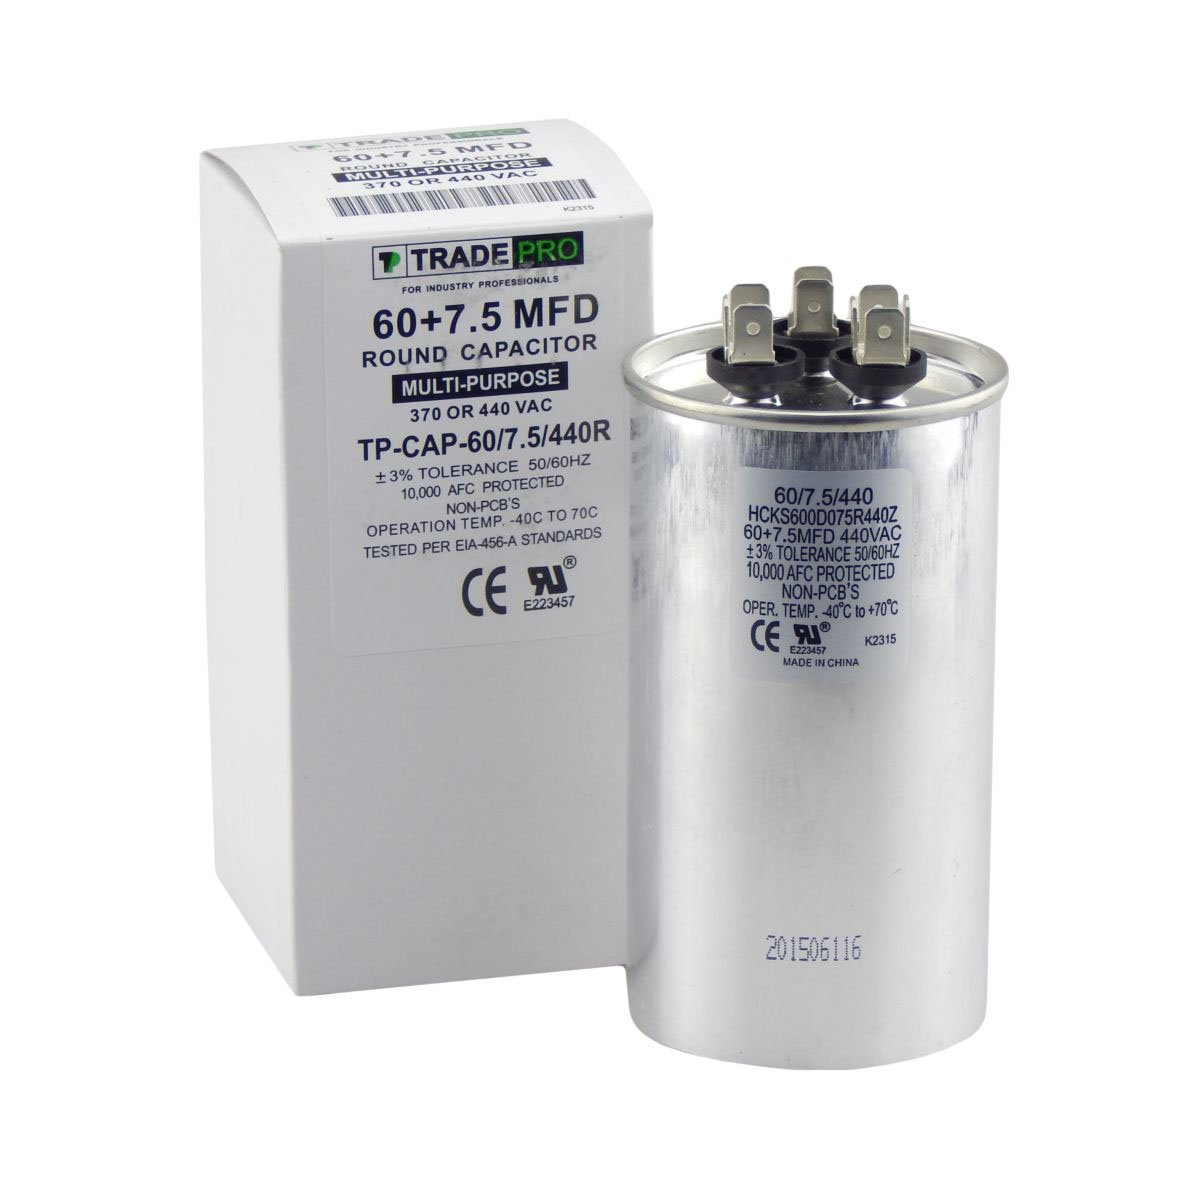 TradePro 60/7.5 MFD Replaces Both 440 and 370 Volt Round Run Capacitors Dual Capacitor 60 + 7.5